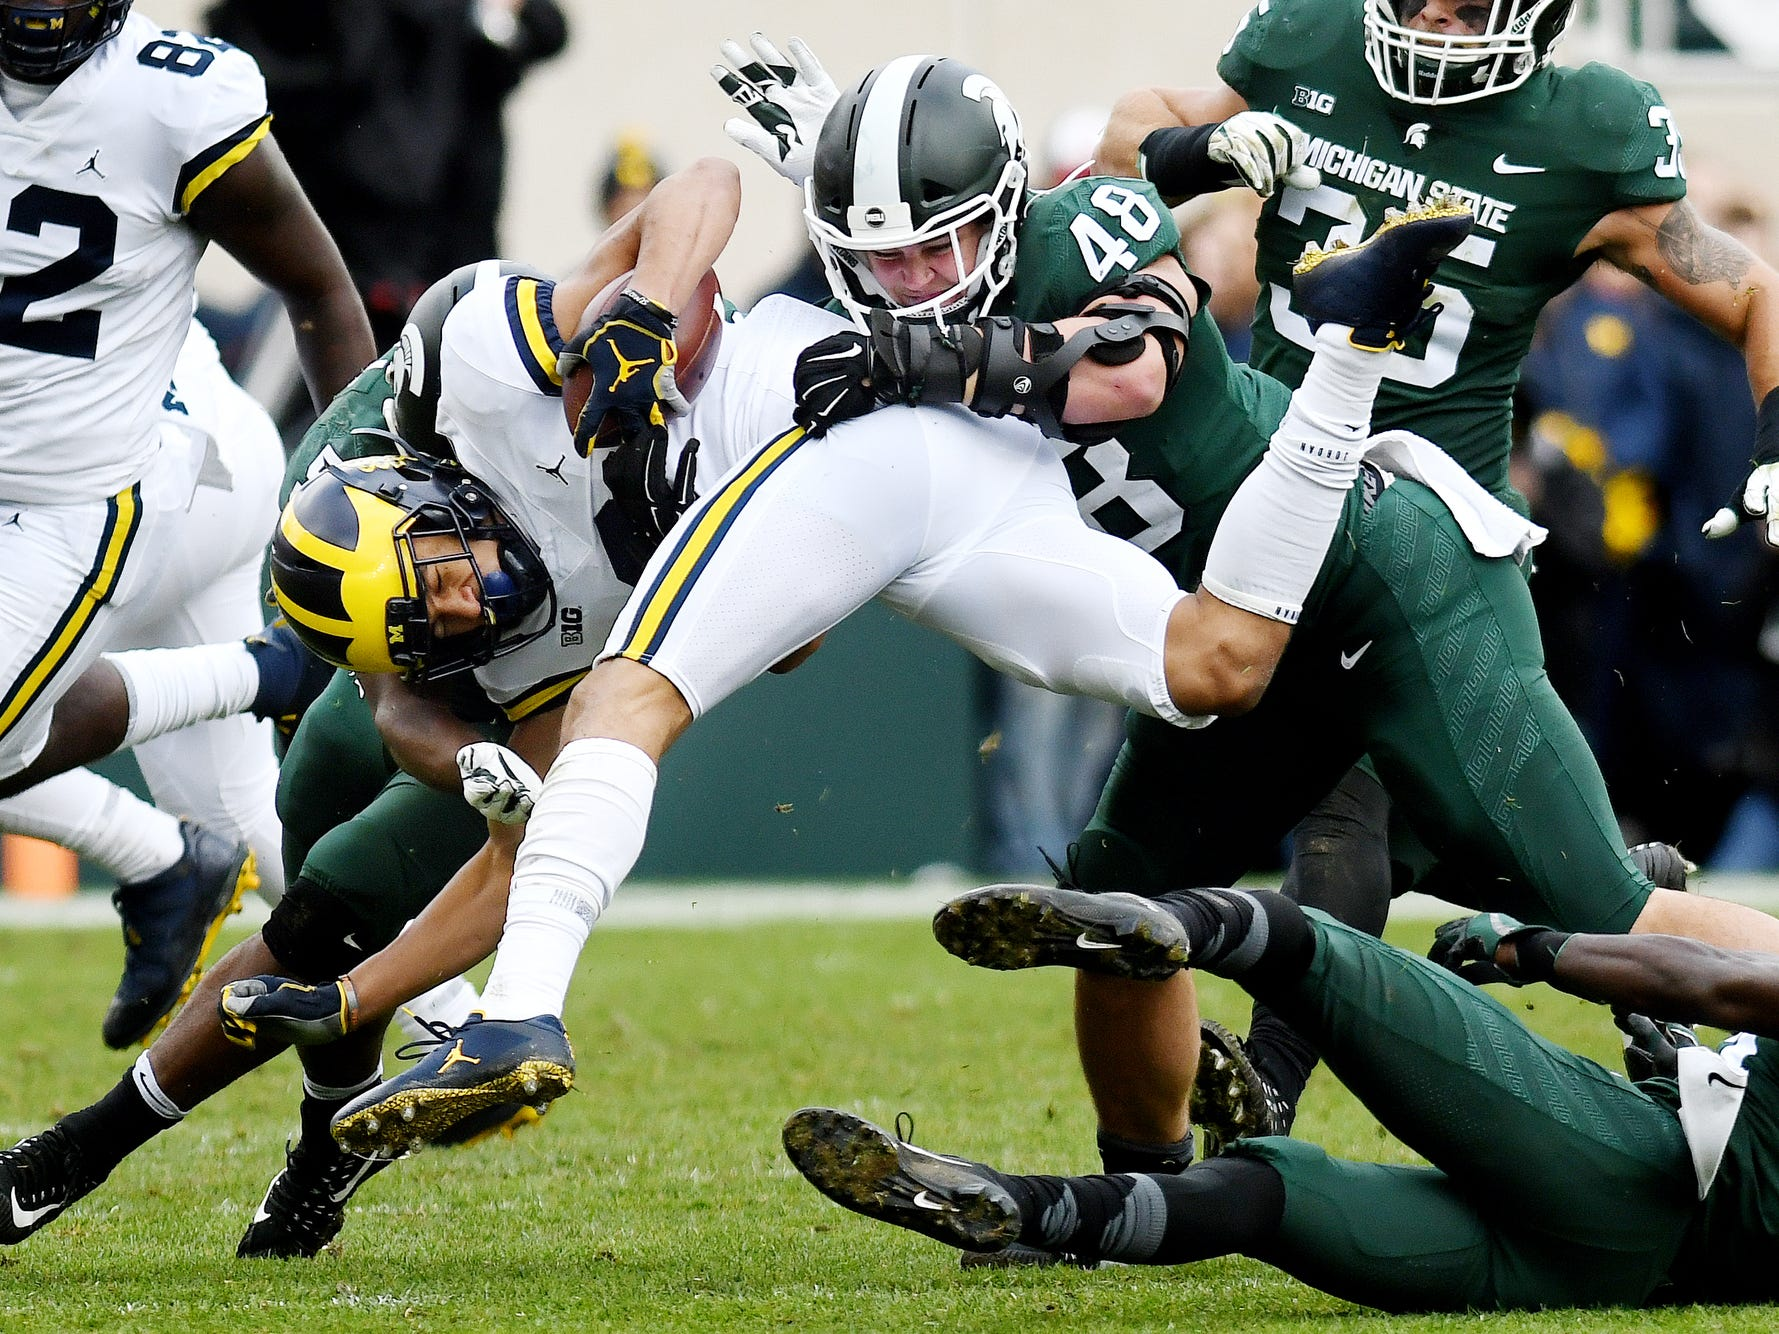 Michigan State's Kenny Willekes, right, tackles an airborne Michigan's Ronnie Bell during the second quarter on Saturday, Oct. 20, 2018, in East Lansing.